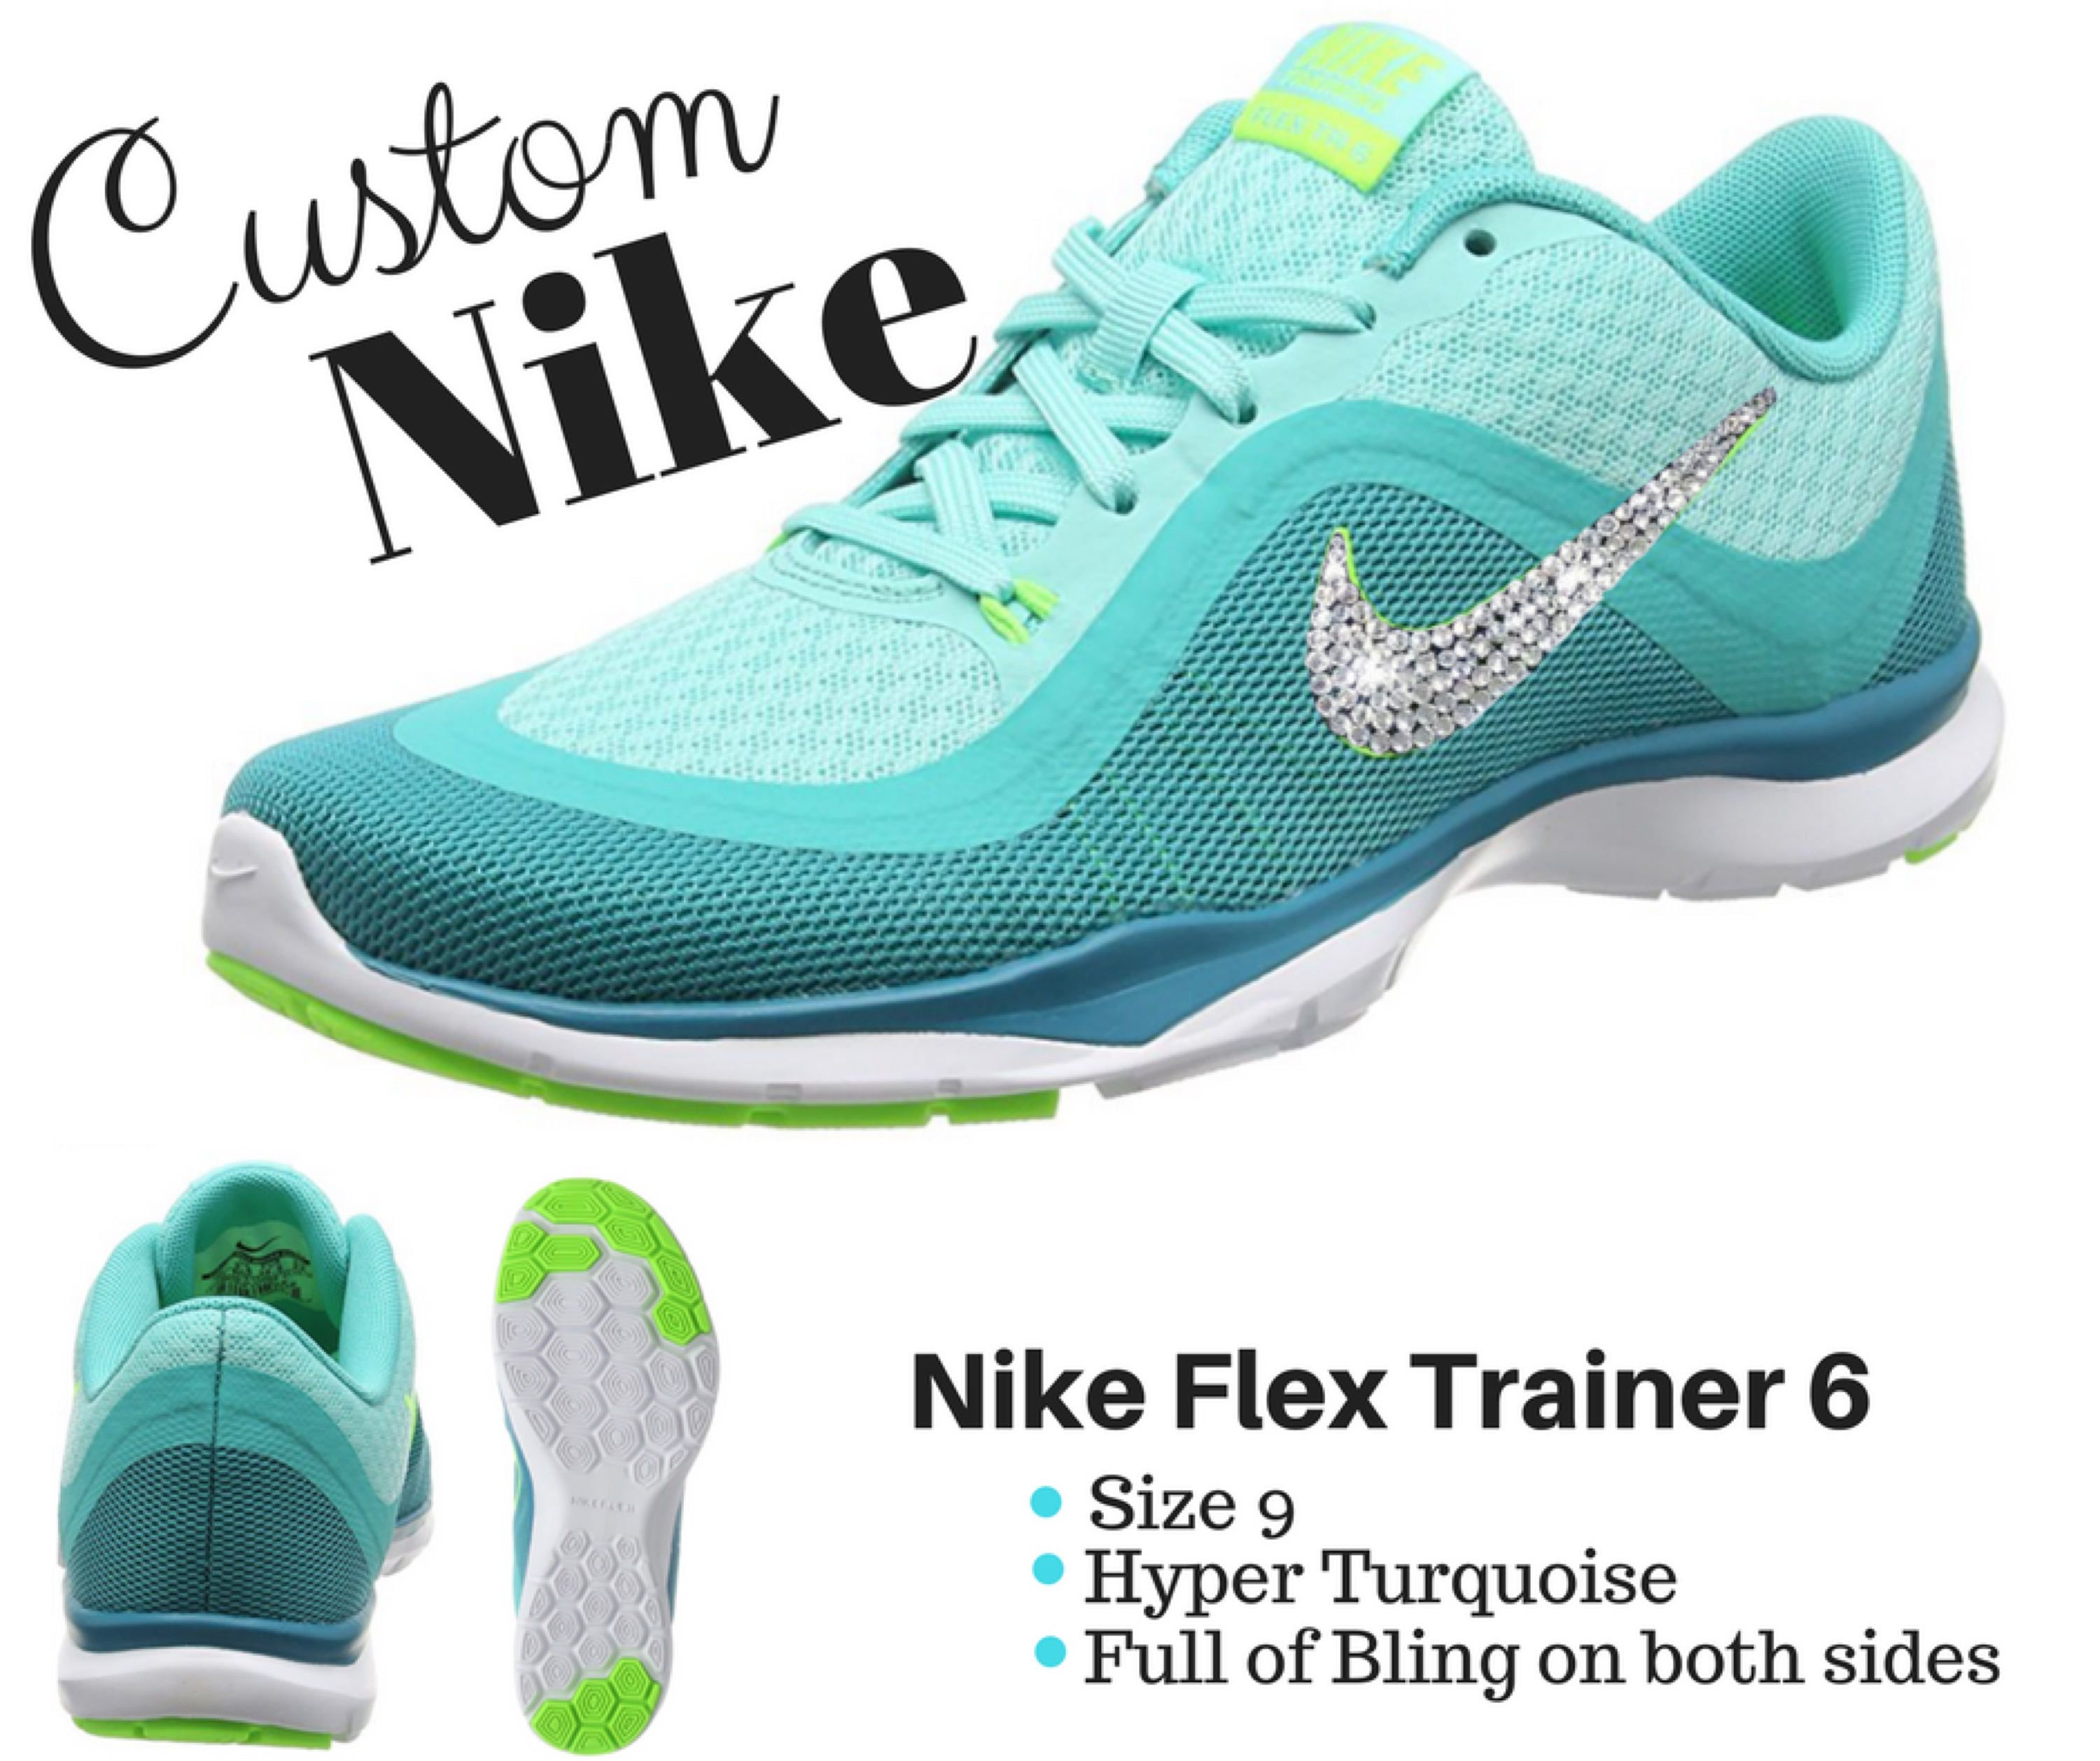 Christmas Gift - Nike Flex Trainer 6 - Bling Nike - Running Shoes ... fc40f6c7c